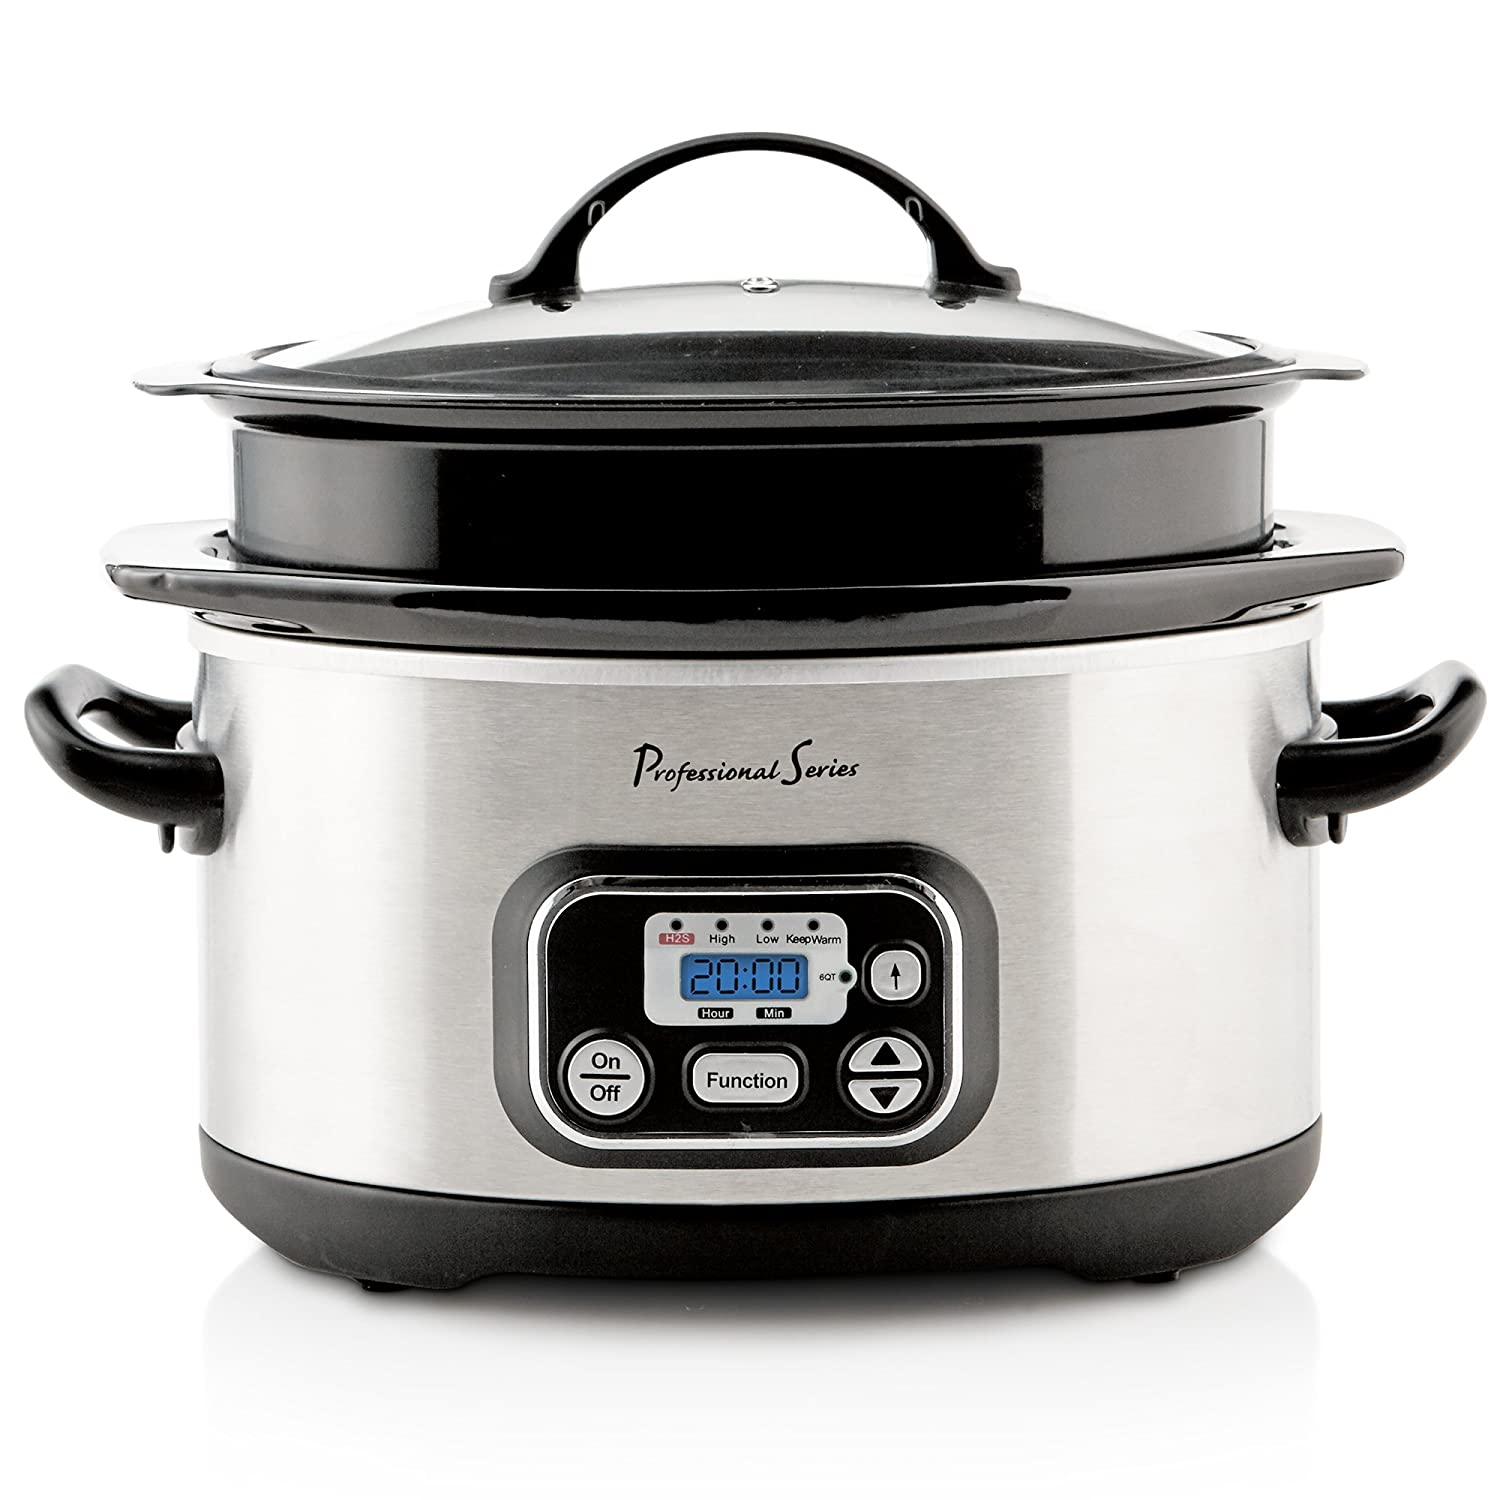 Continental Electric PS75239 Slow Cooker 4-6 quart Stainless Steel